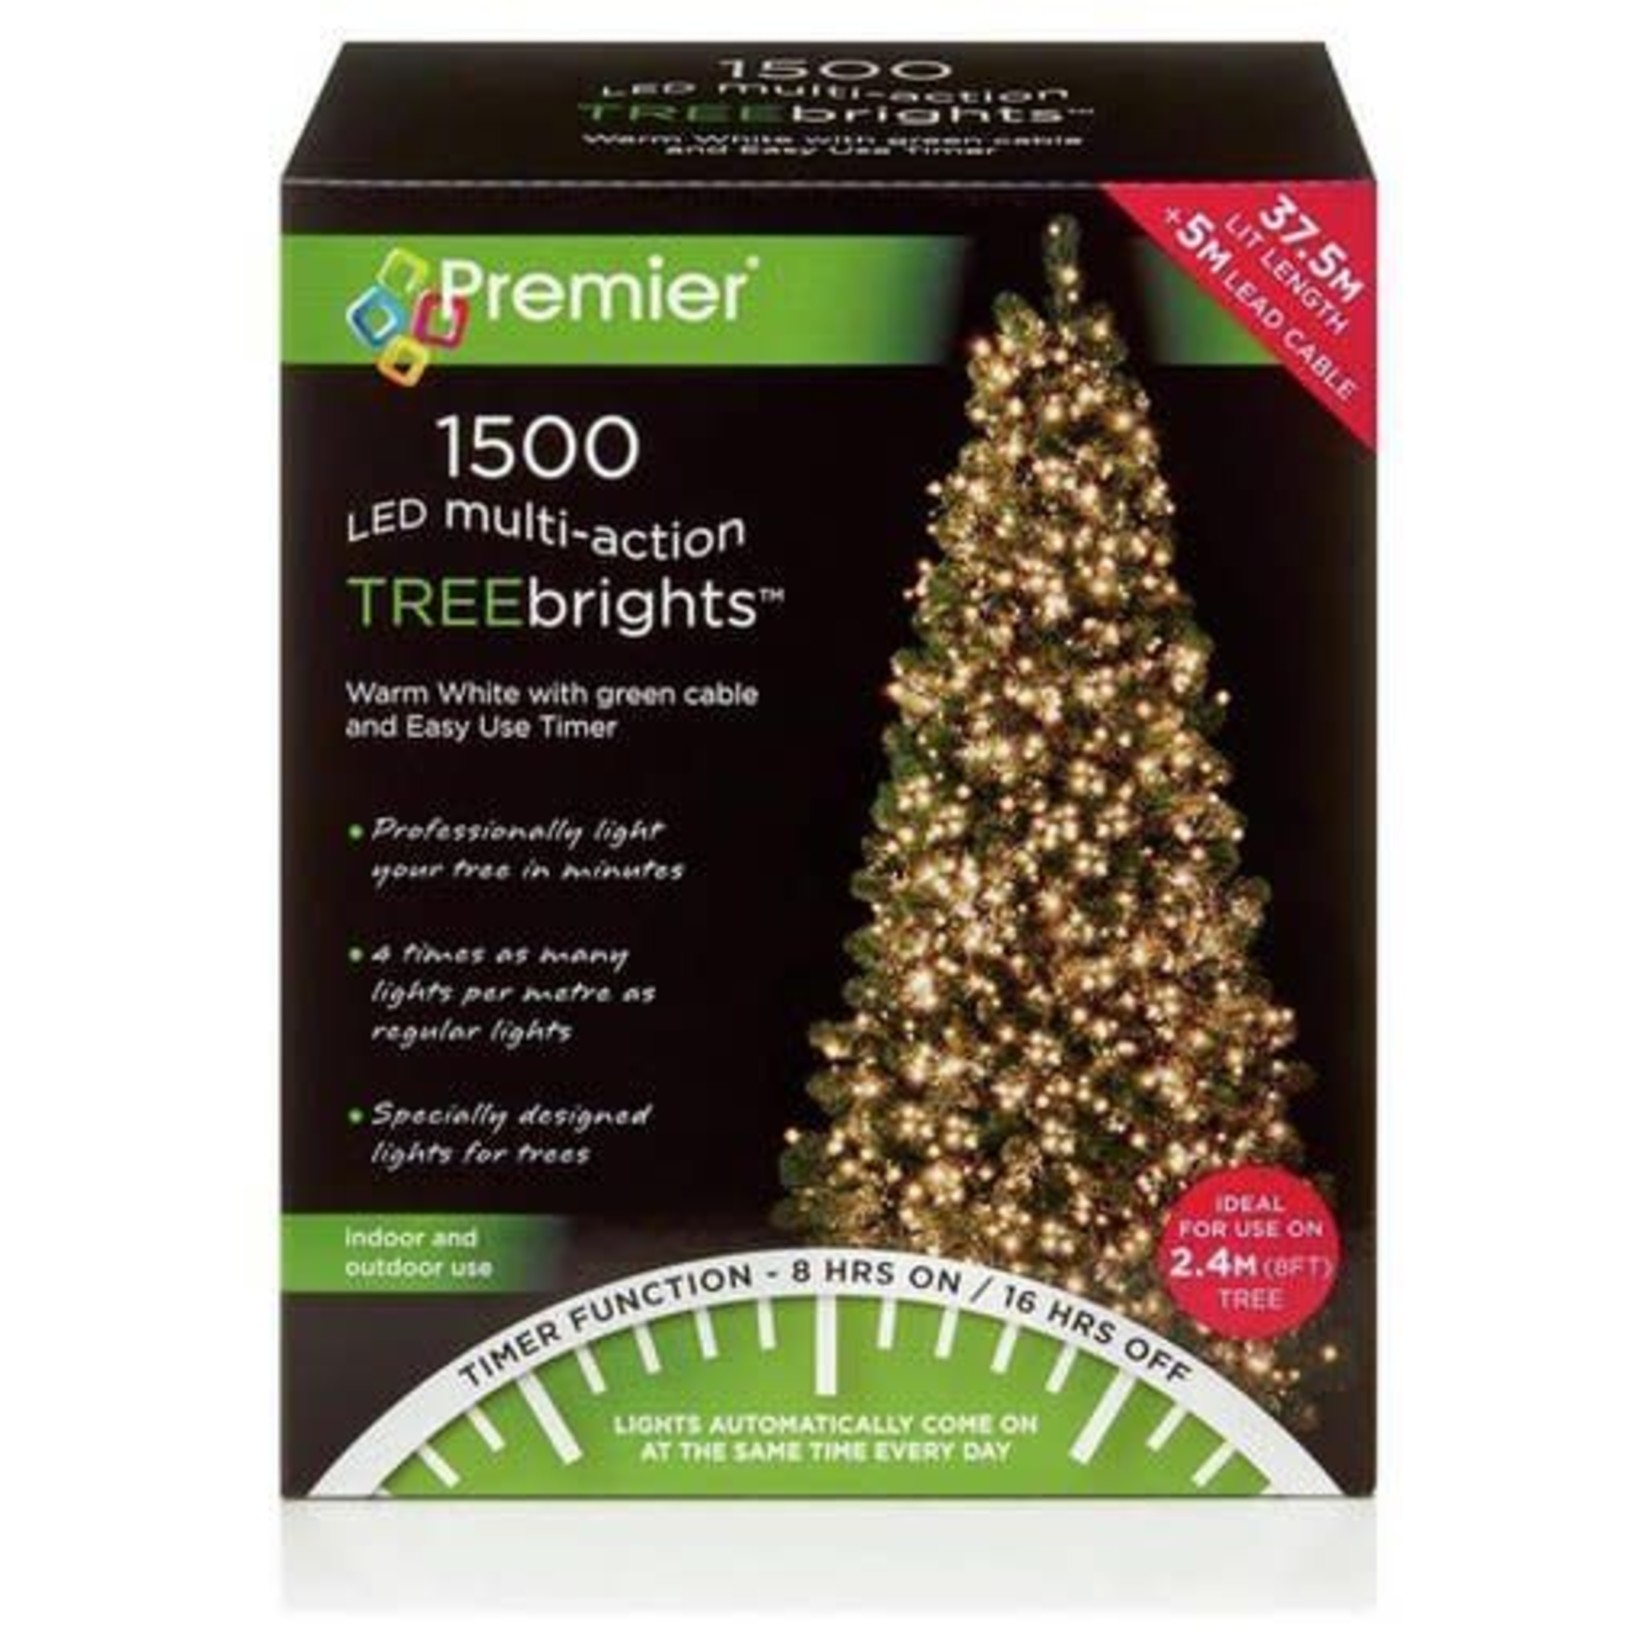 1500 M-A Led TreeBrights Timer Warm white